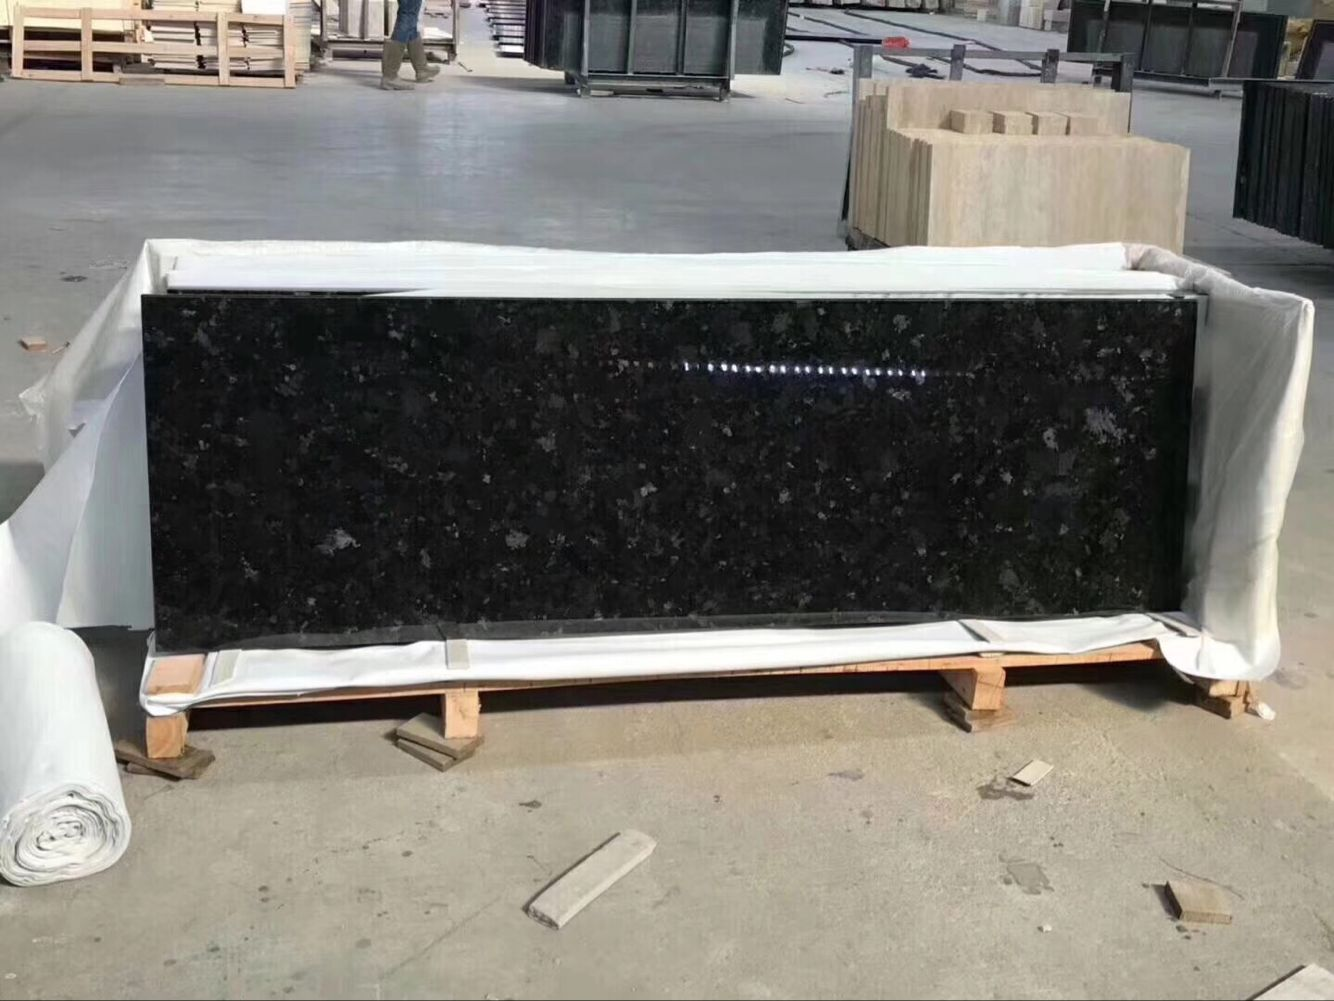 Granite stores near me,granite supplier,honed granite,granite price per square foot,granite warehouse,granite store,granite near me,stone slab,granite backsplash